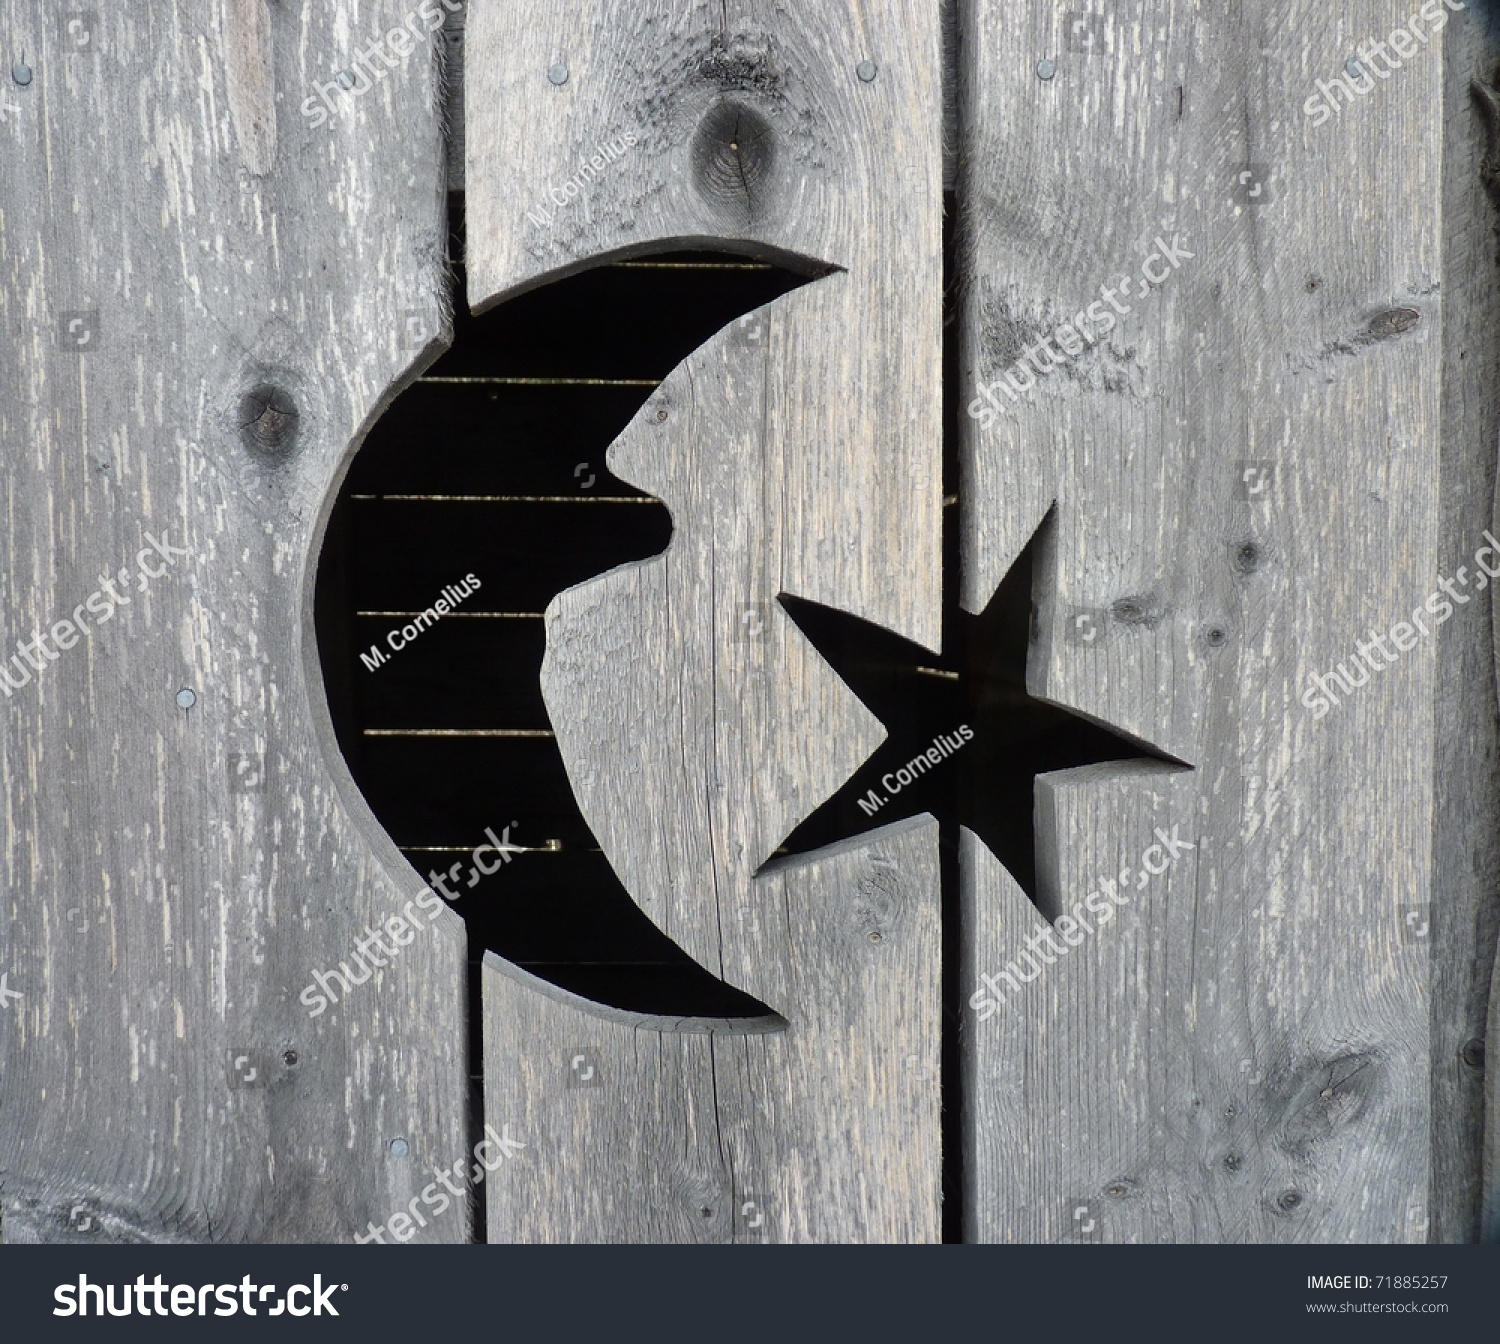 Close Moon Stars Cutout On Rustic Stock Photo Edit Now 71885257